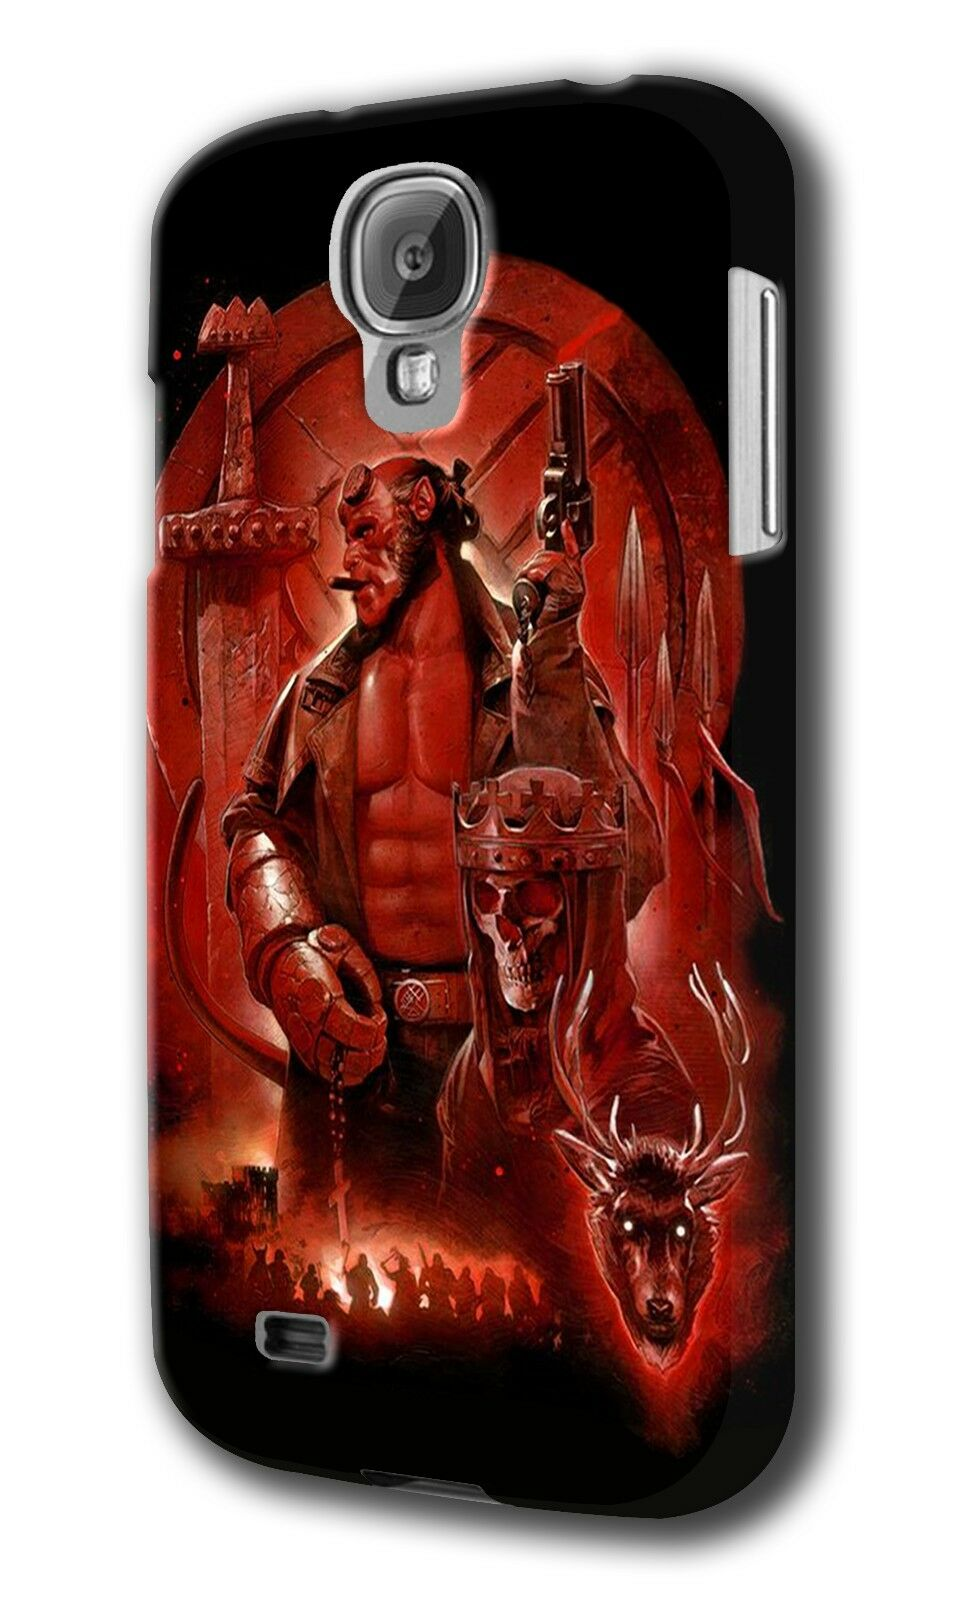 Hellboy Samsung Galaxy S4 5 6 7 8 Edge Note 3 4 5 Plus Case Cover 9